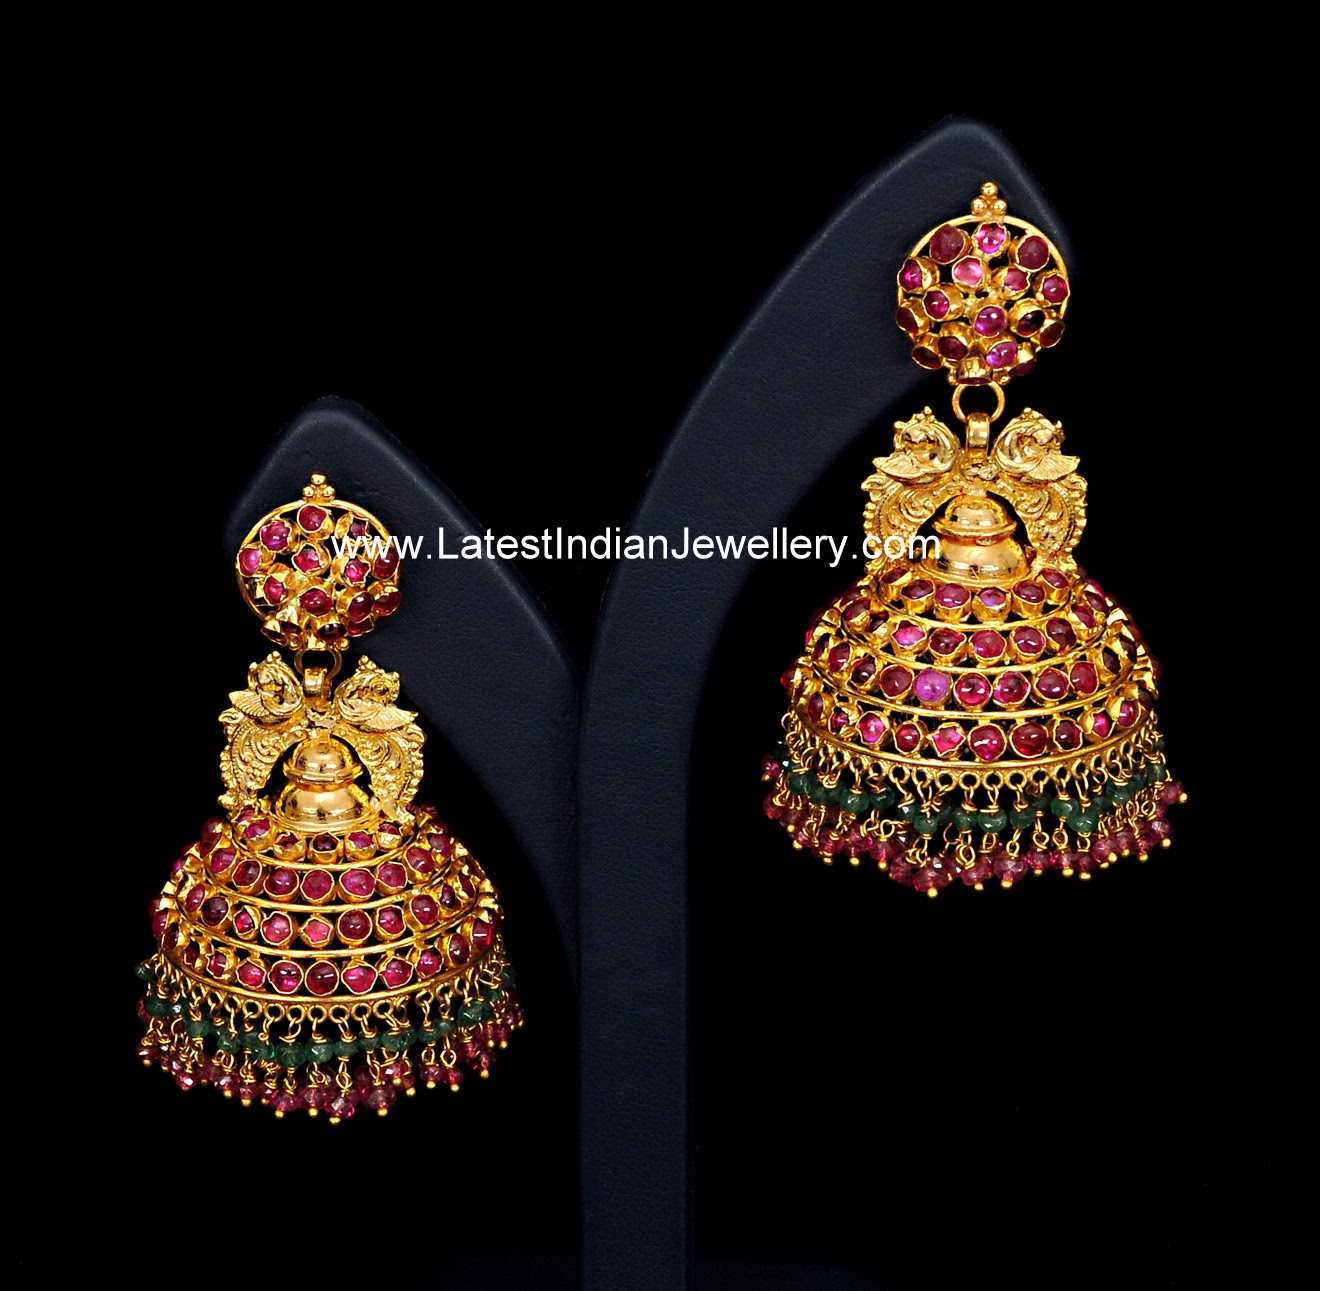 Ruby Gold Jhumka Earrings Latest Indian Jewellery Designs